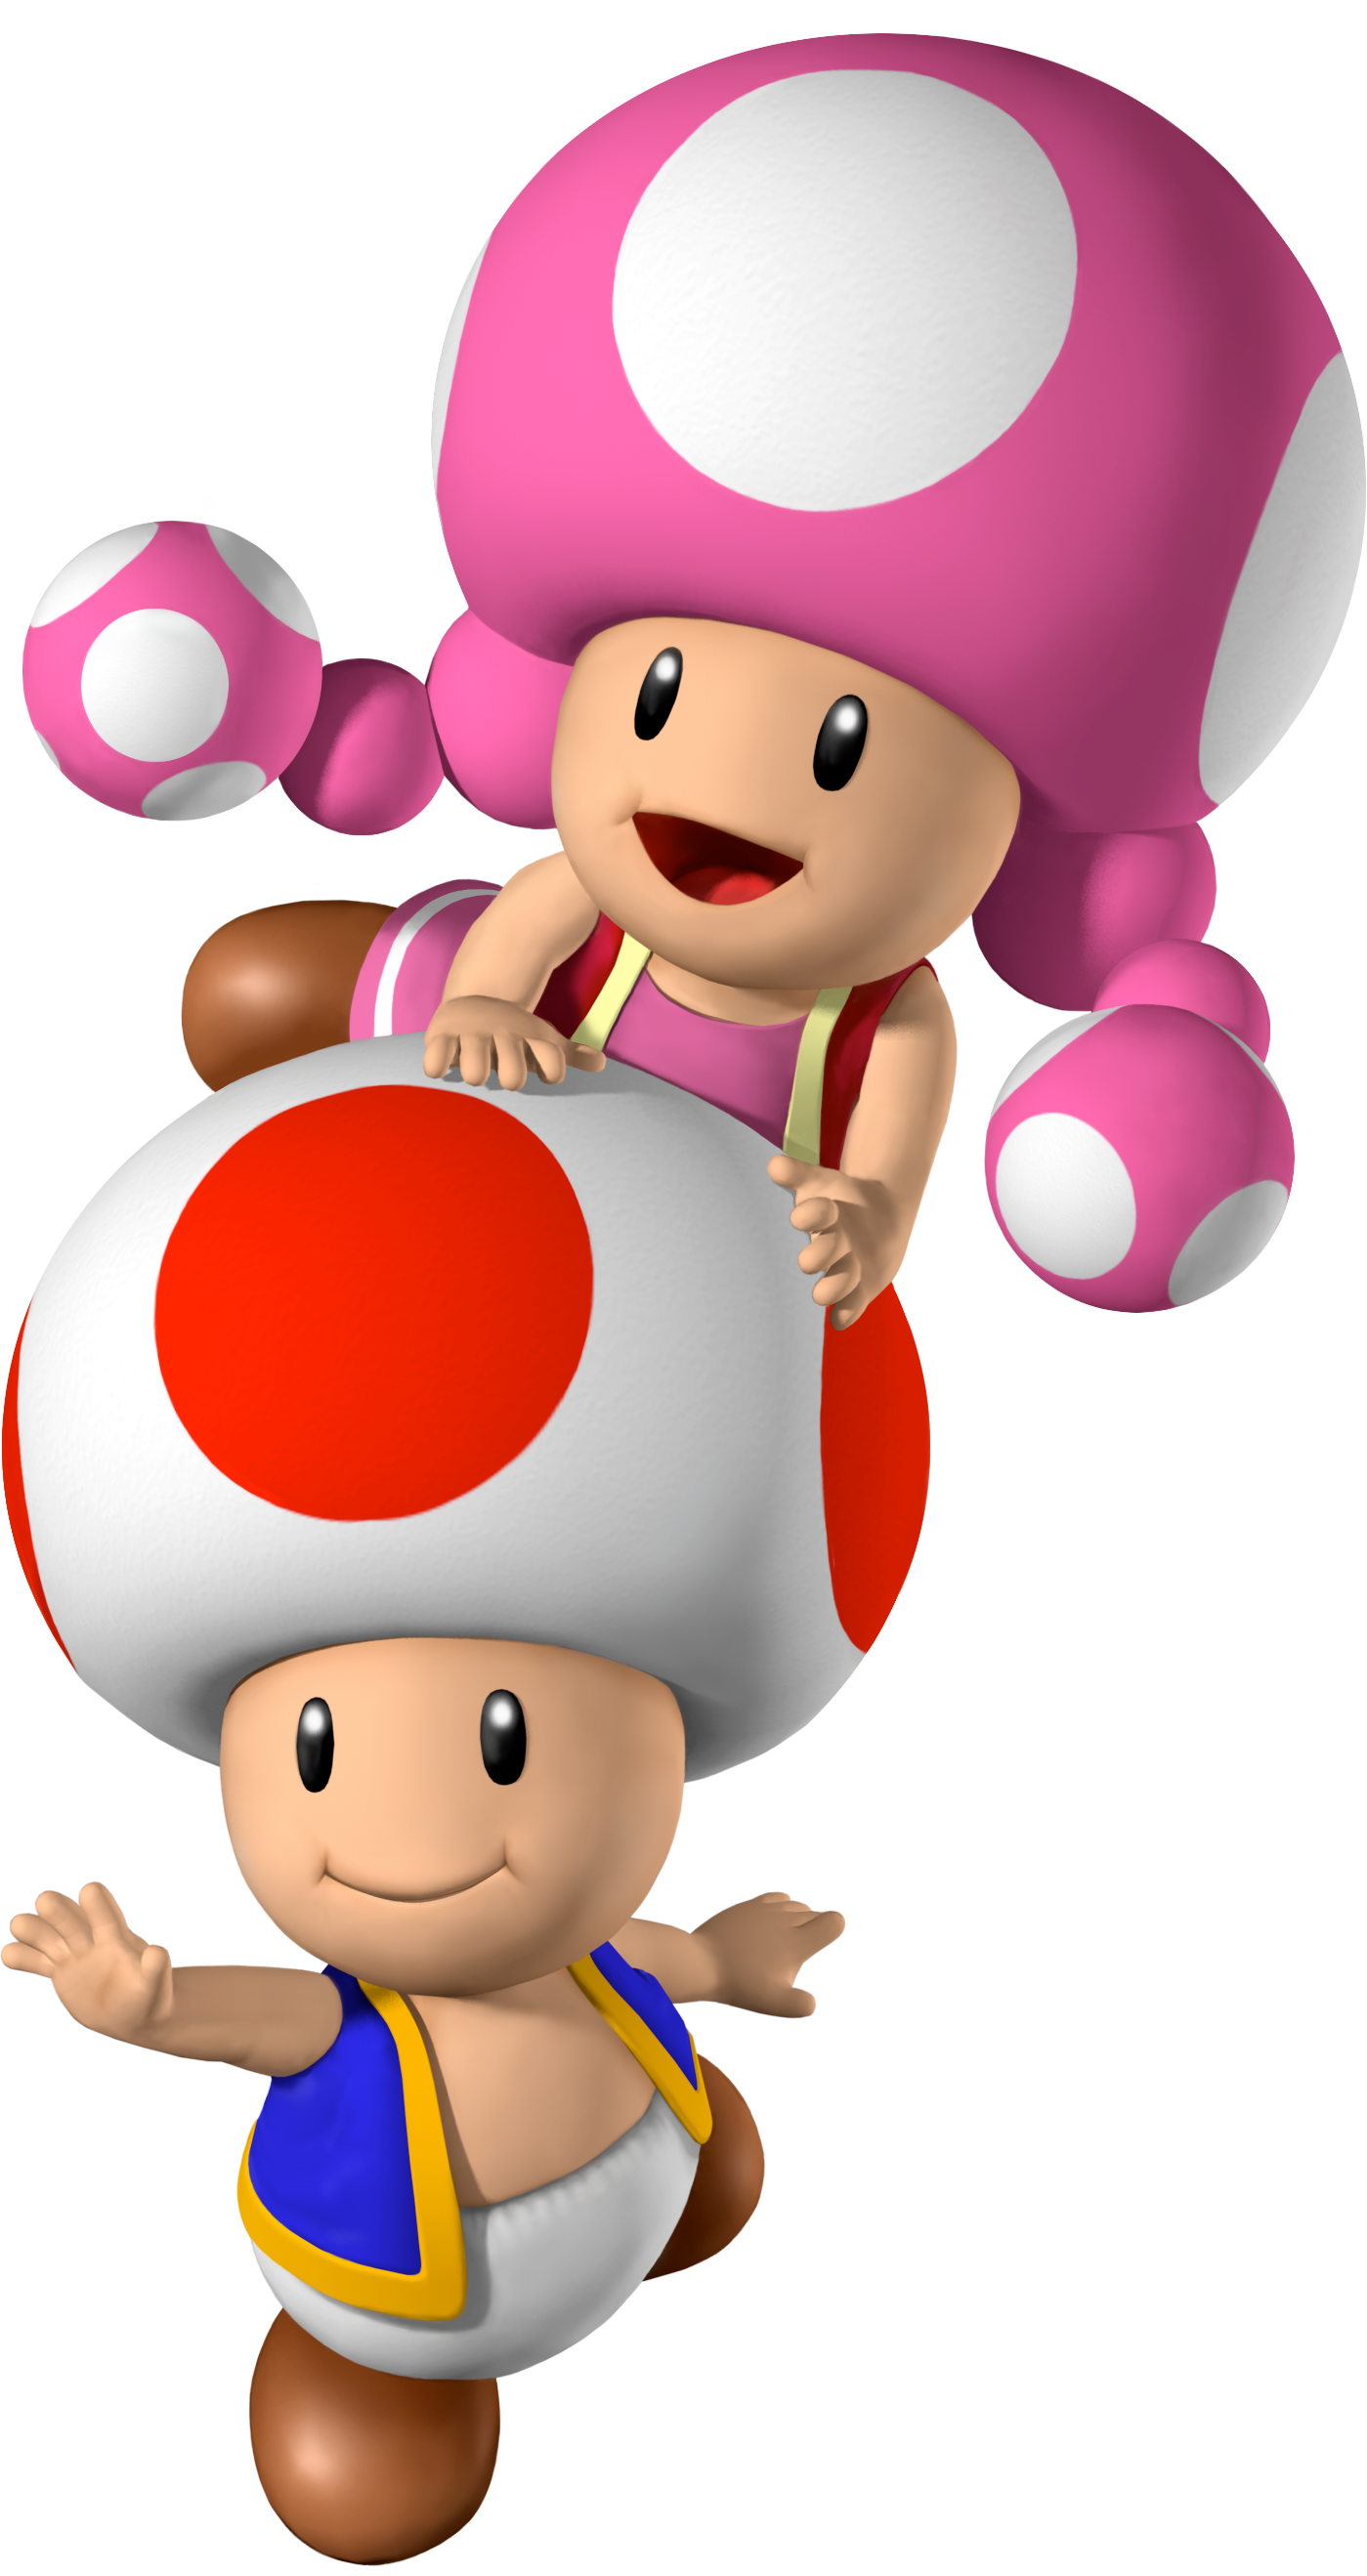 Image - Toad and Toadette - Mario Party 7.png   Fantendo ... - photo#18